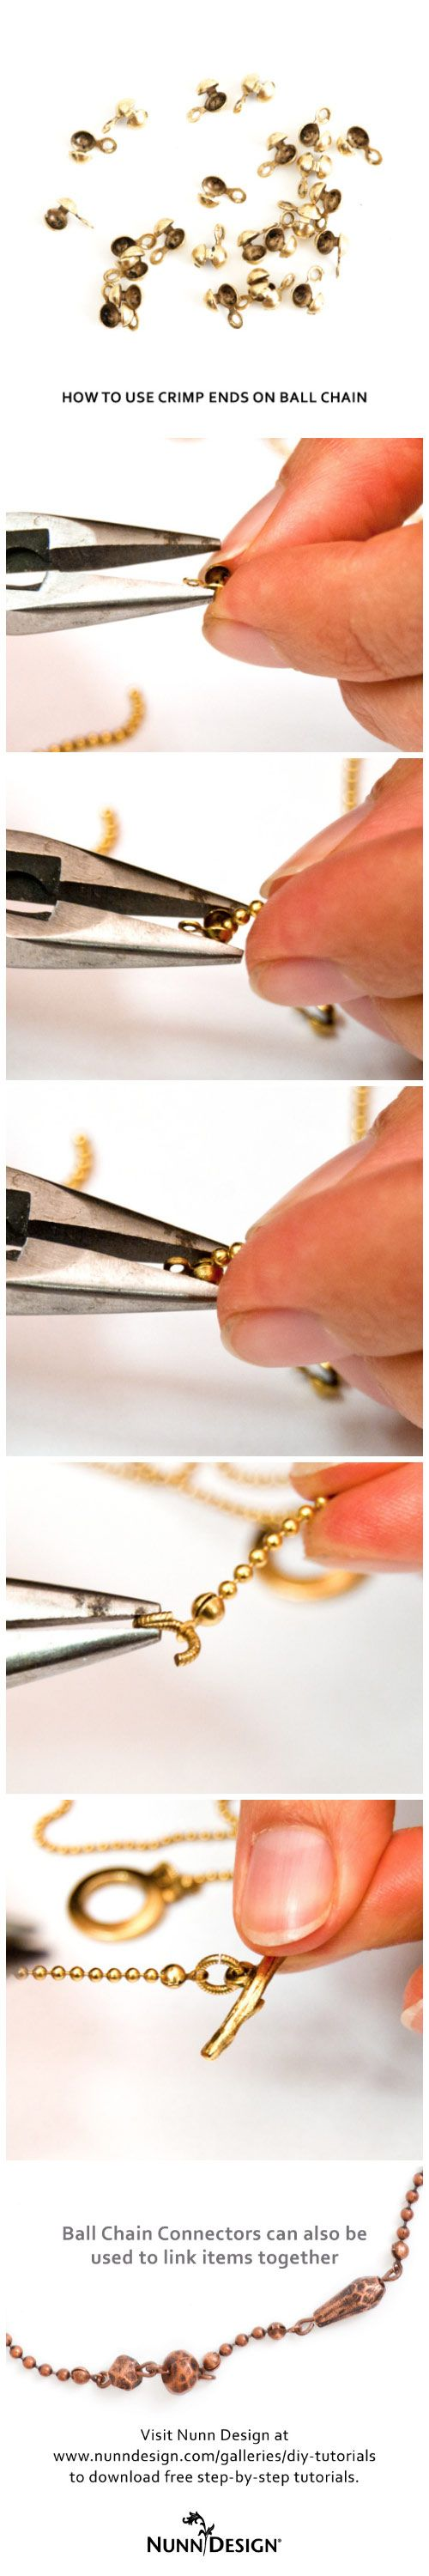 How to use a crimp connector.